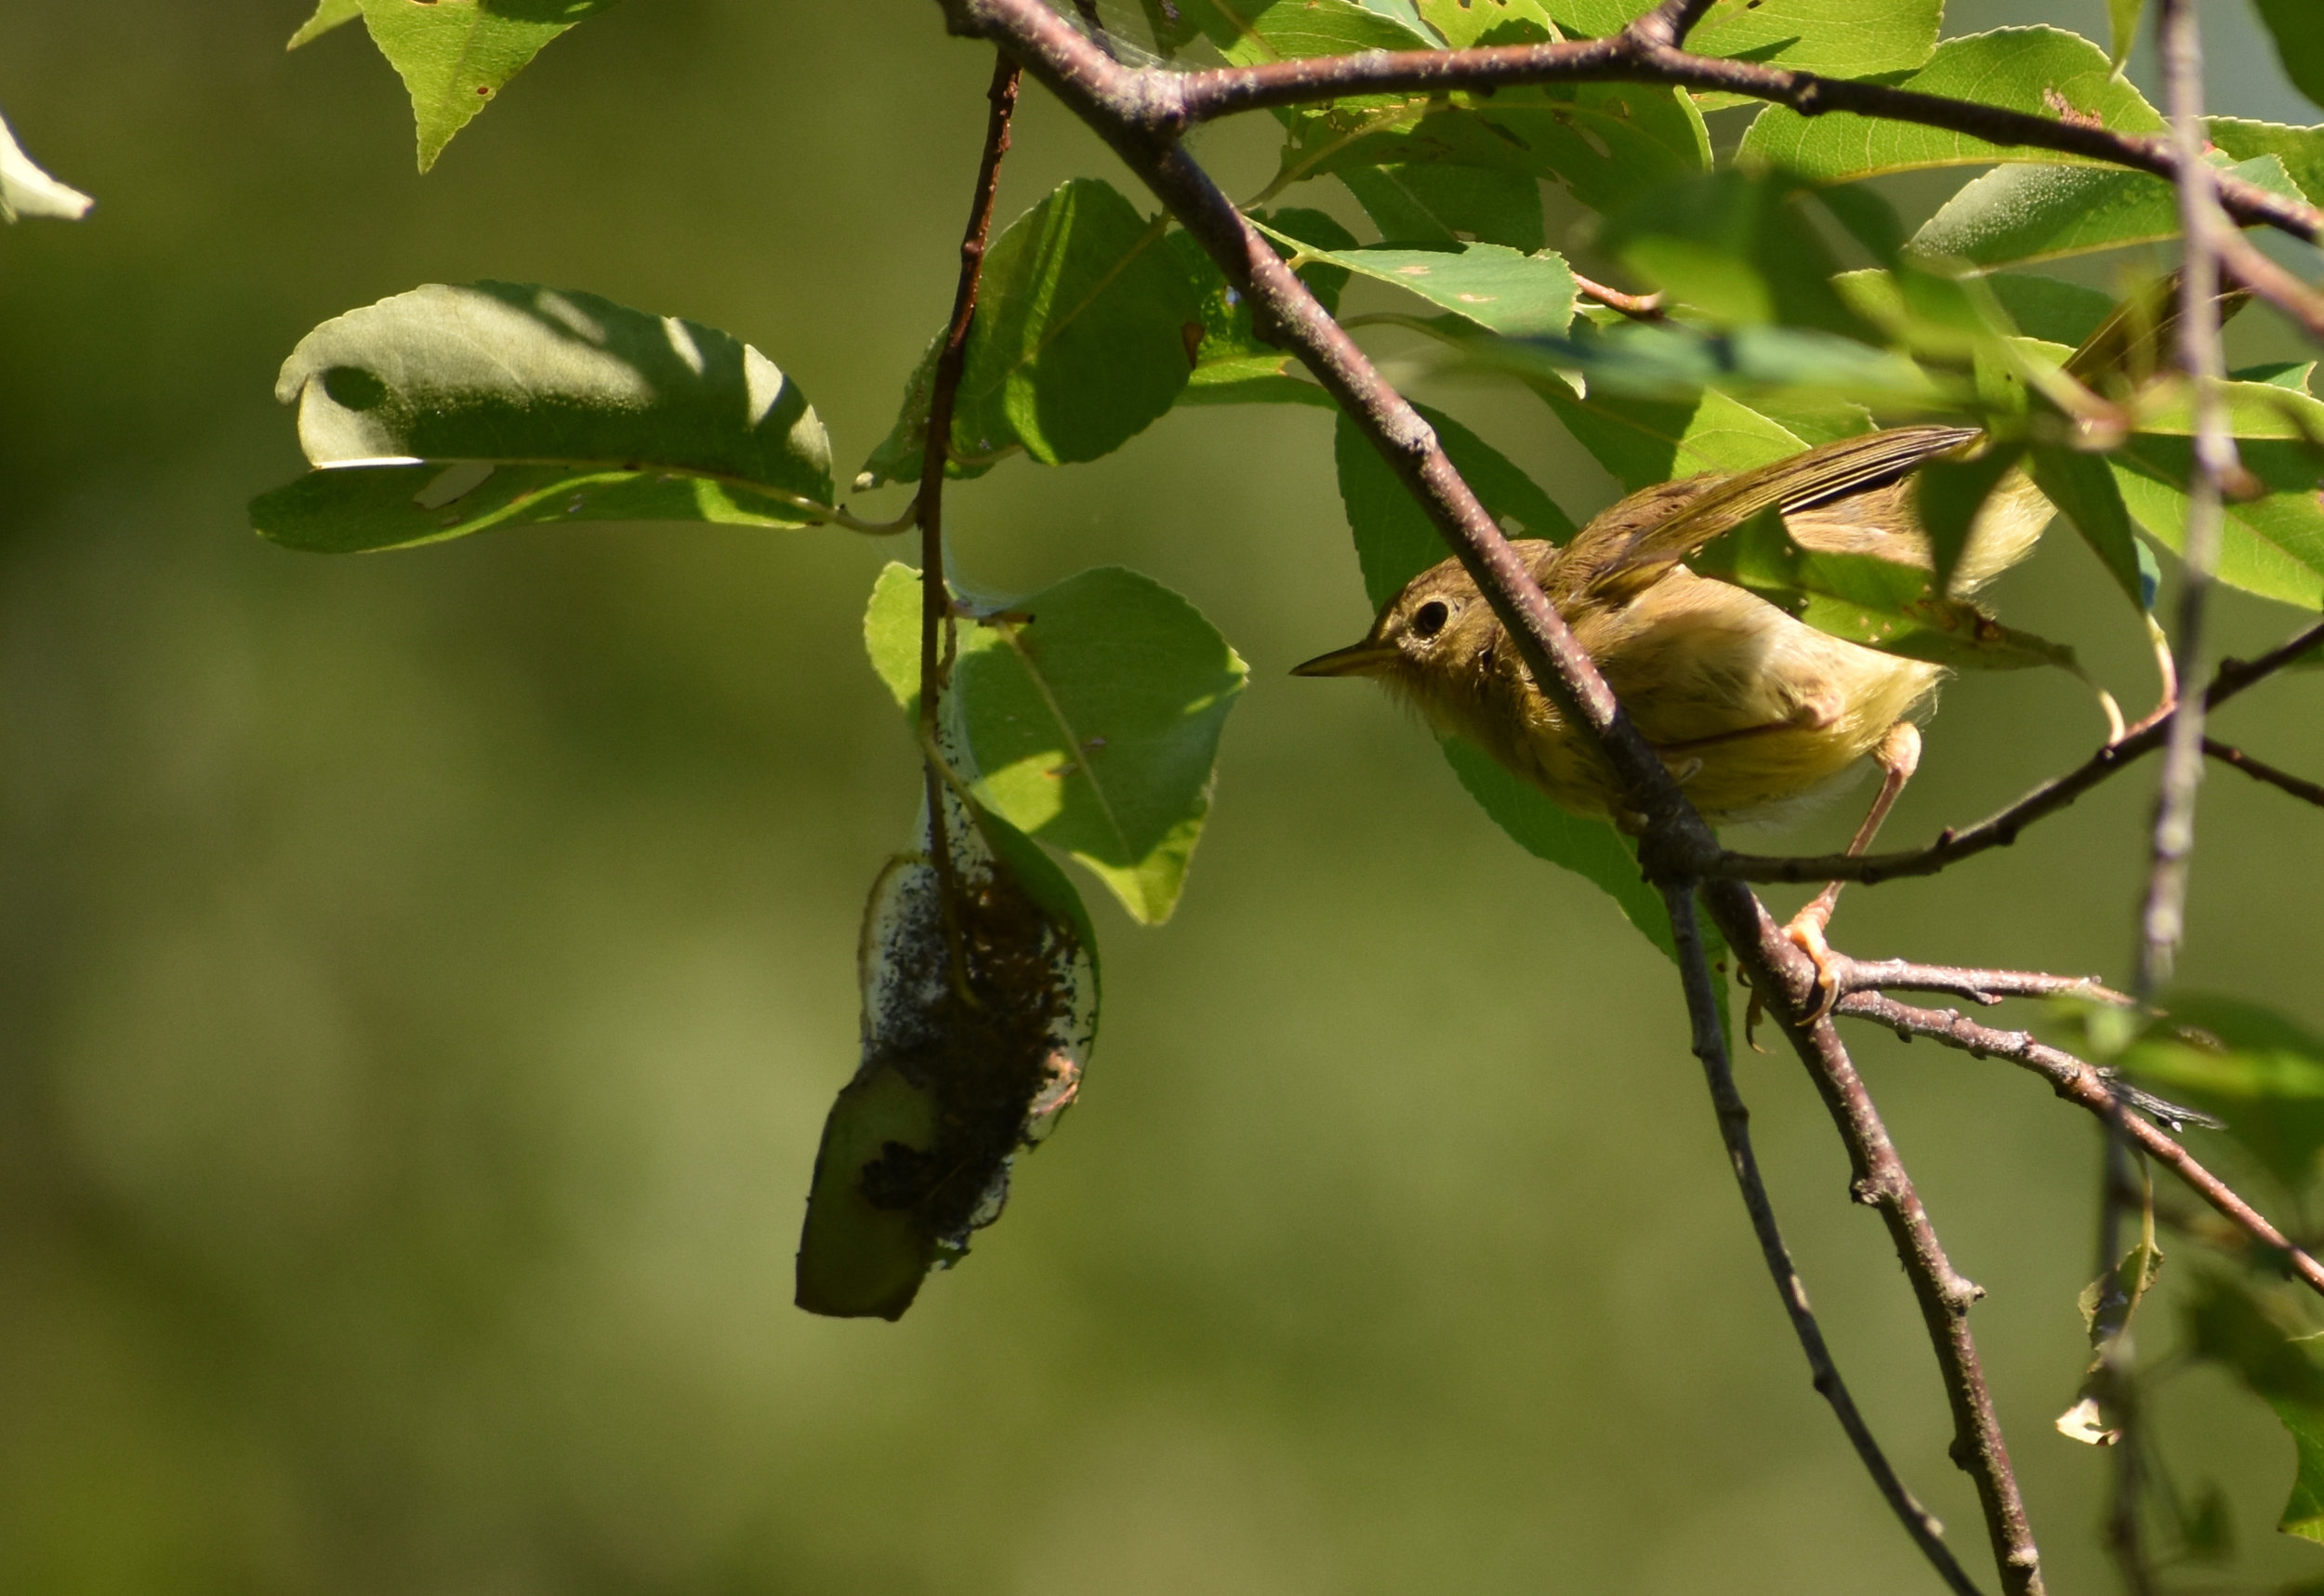 Common Yellowthroat eating insects in Wild Cherry